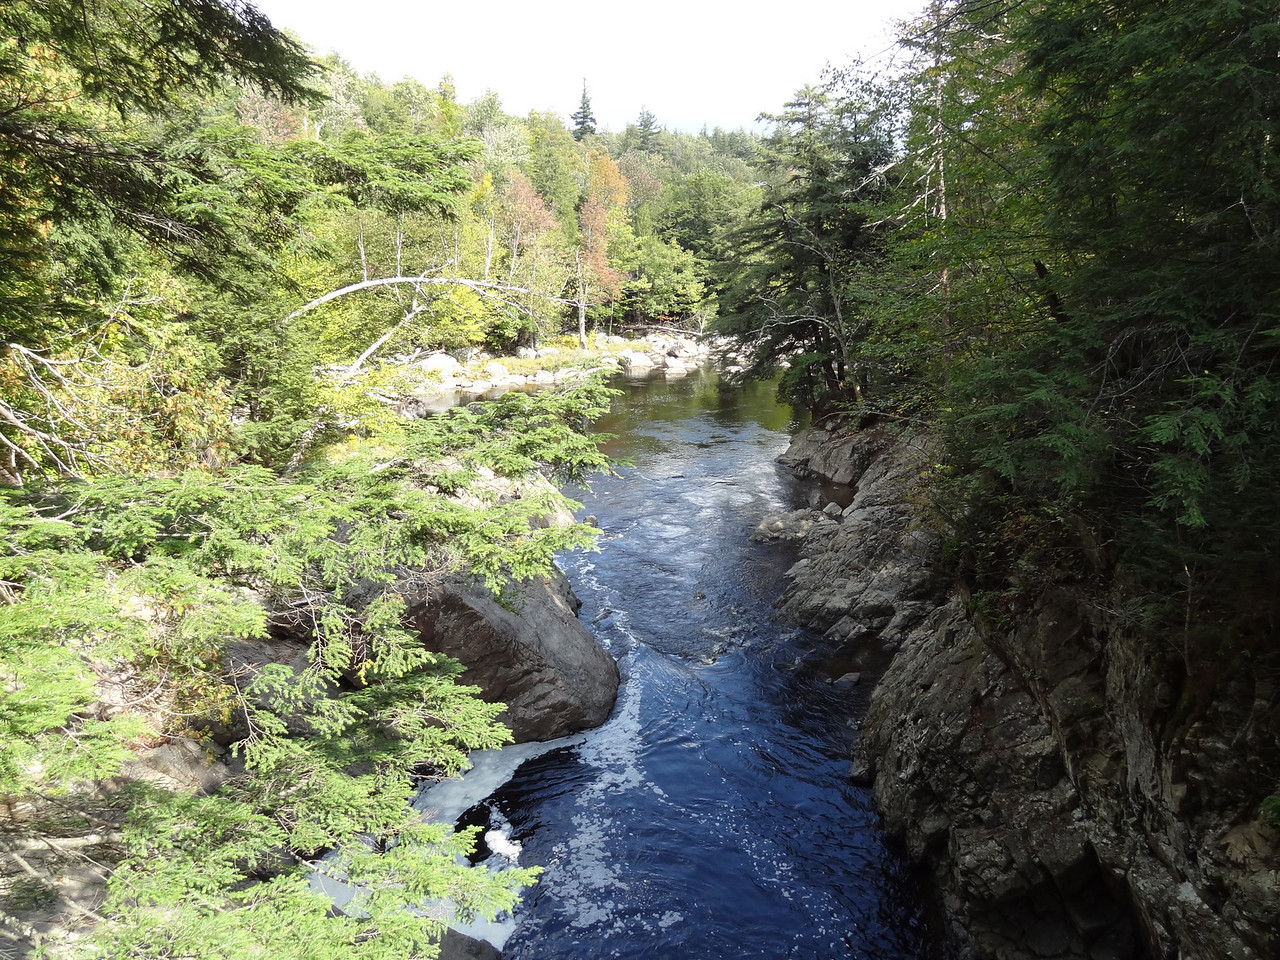 Downstream of the falls, we are back to normal again.